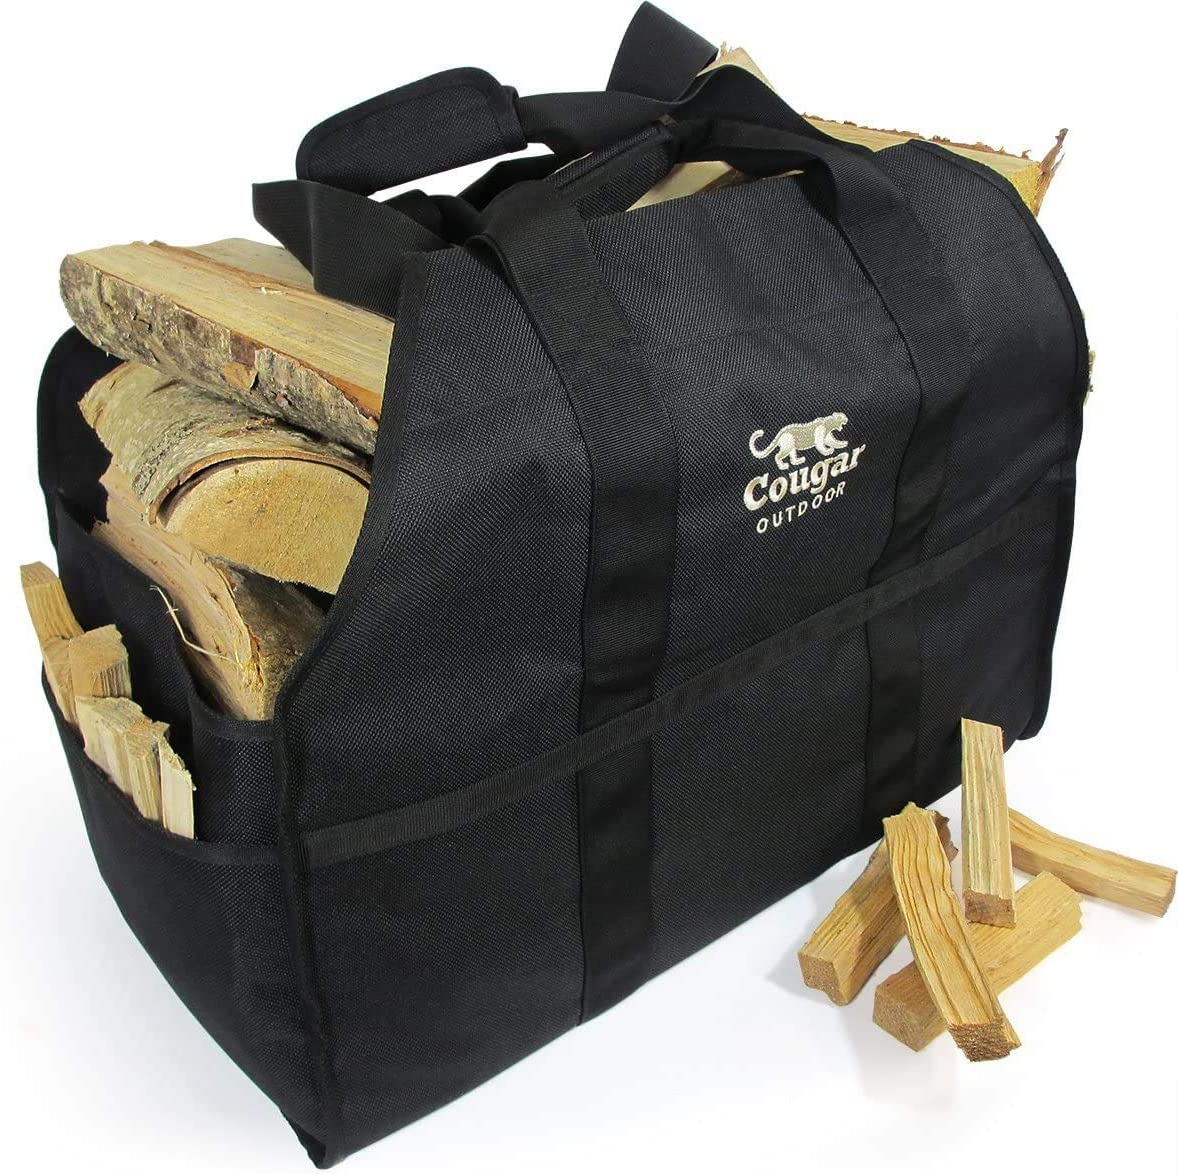 Cougar Outdoor - The Ultimate Log Carrier 2 Heavy Cheap bargain 40% OFF Cheap Sale Handles Dut